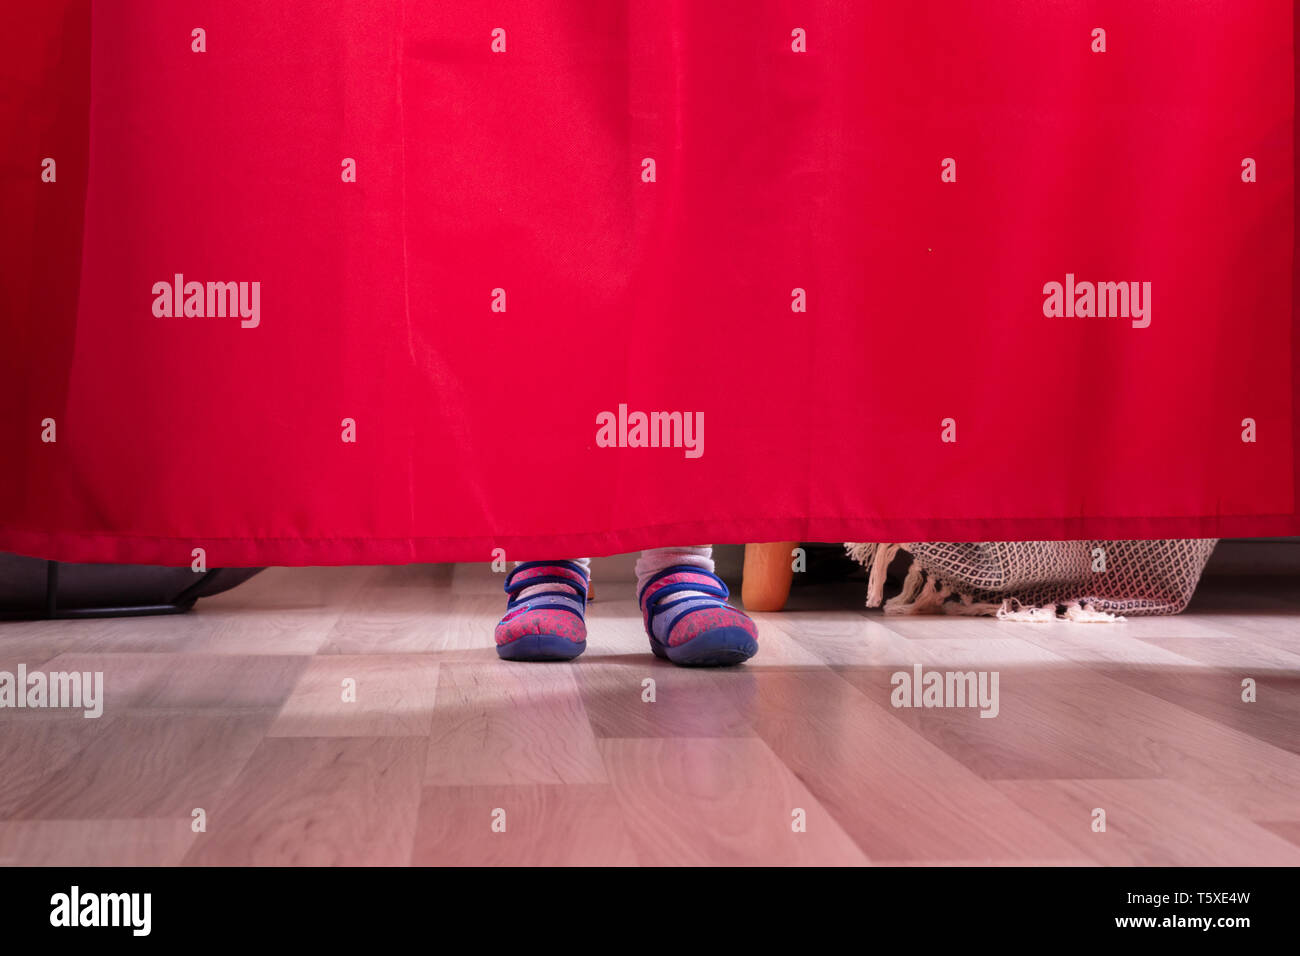 Low Section Of A Girl's Feet Behind The Curtain On Hardwood Floor - Stock Image